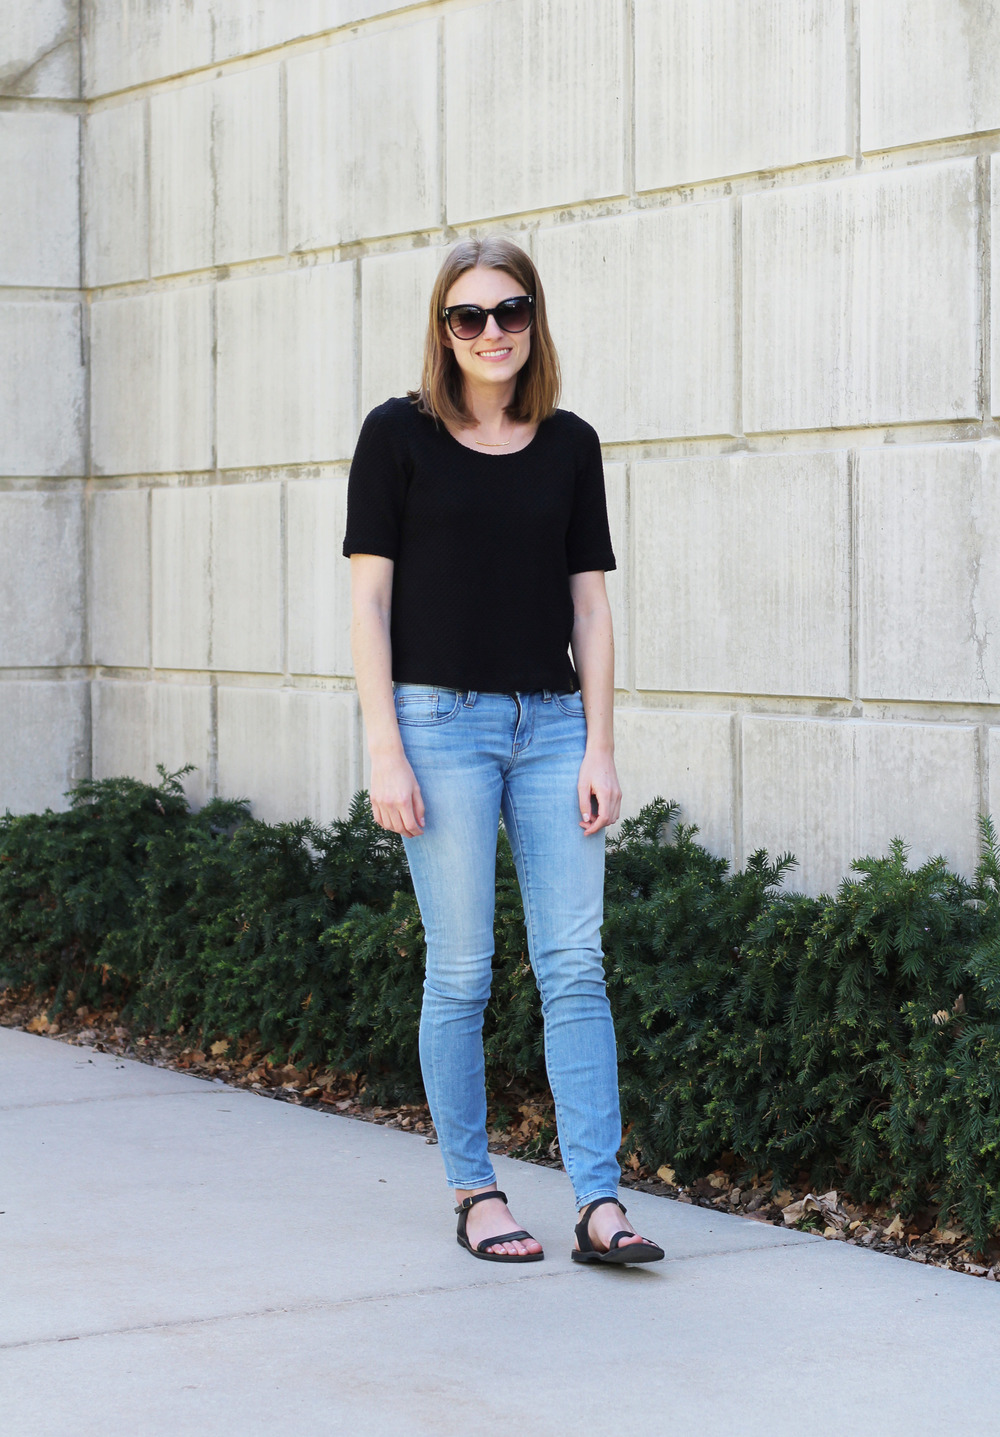 Black Anthropologie top, light wash Madewell skinny jeans, black sandals, gold Gorjana bar necklace — Cotton Cashmere Cat Hair